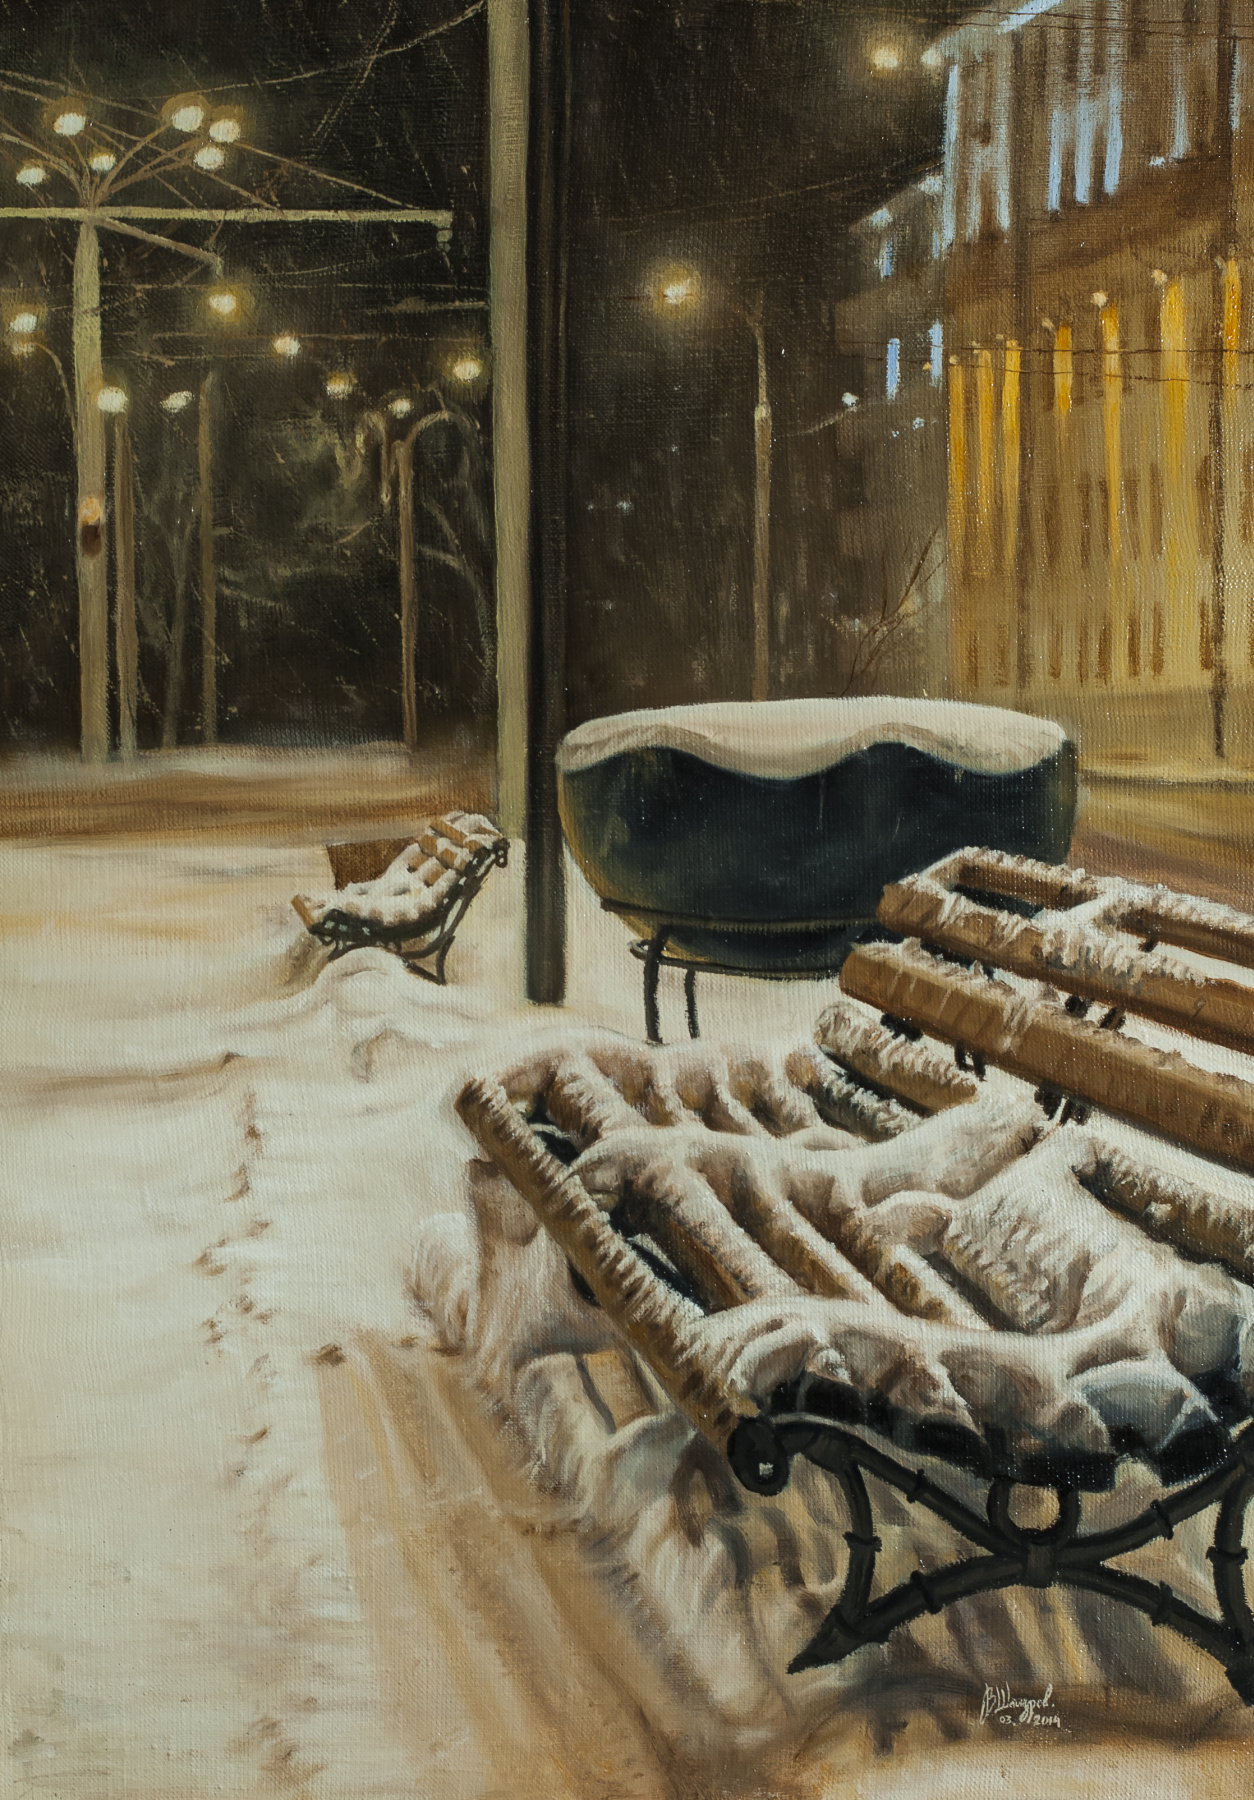 Вячеслав Юрьевич Шайнуров. Winter bench